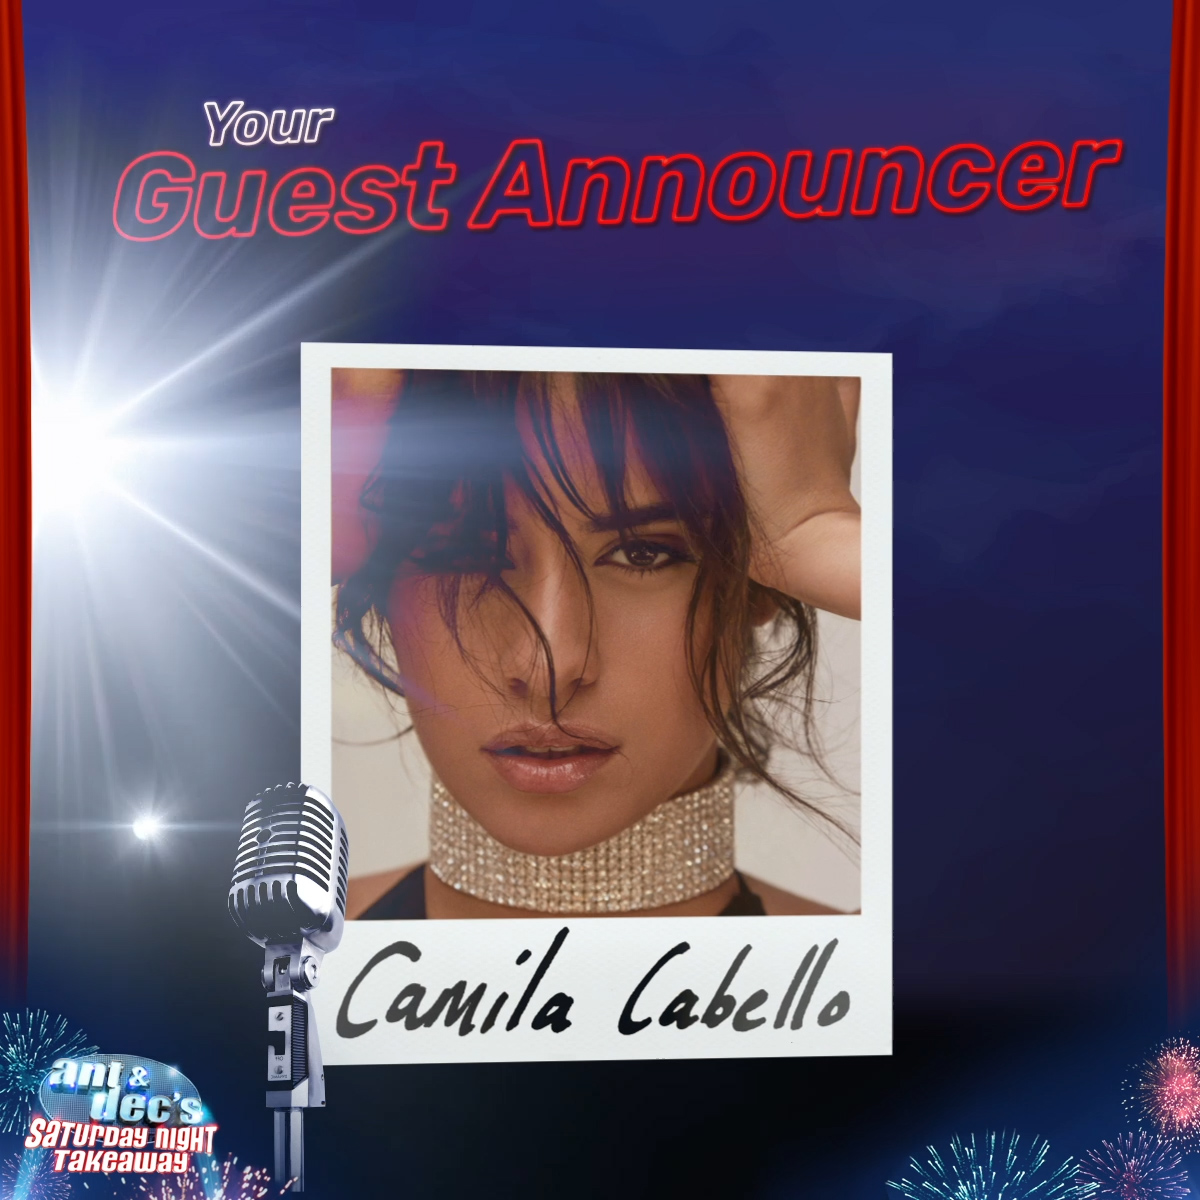 My Oh My! Our first Guest Announcer of the series will be the fabulous @Camila_Cabello 🎤💃 #SaturdayNightTakeaway